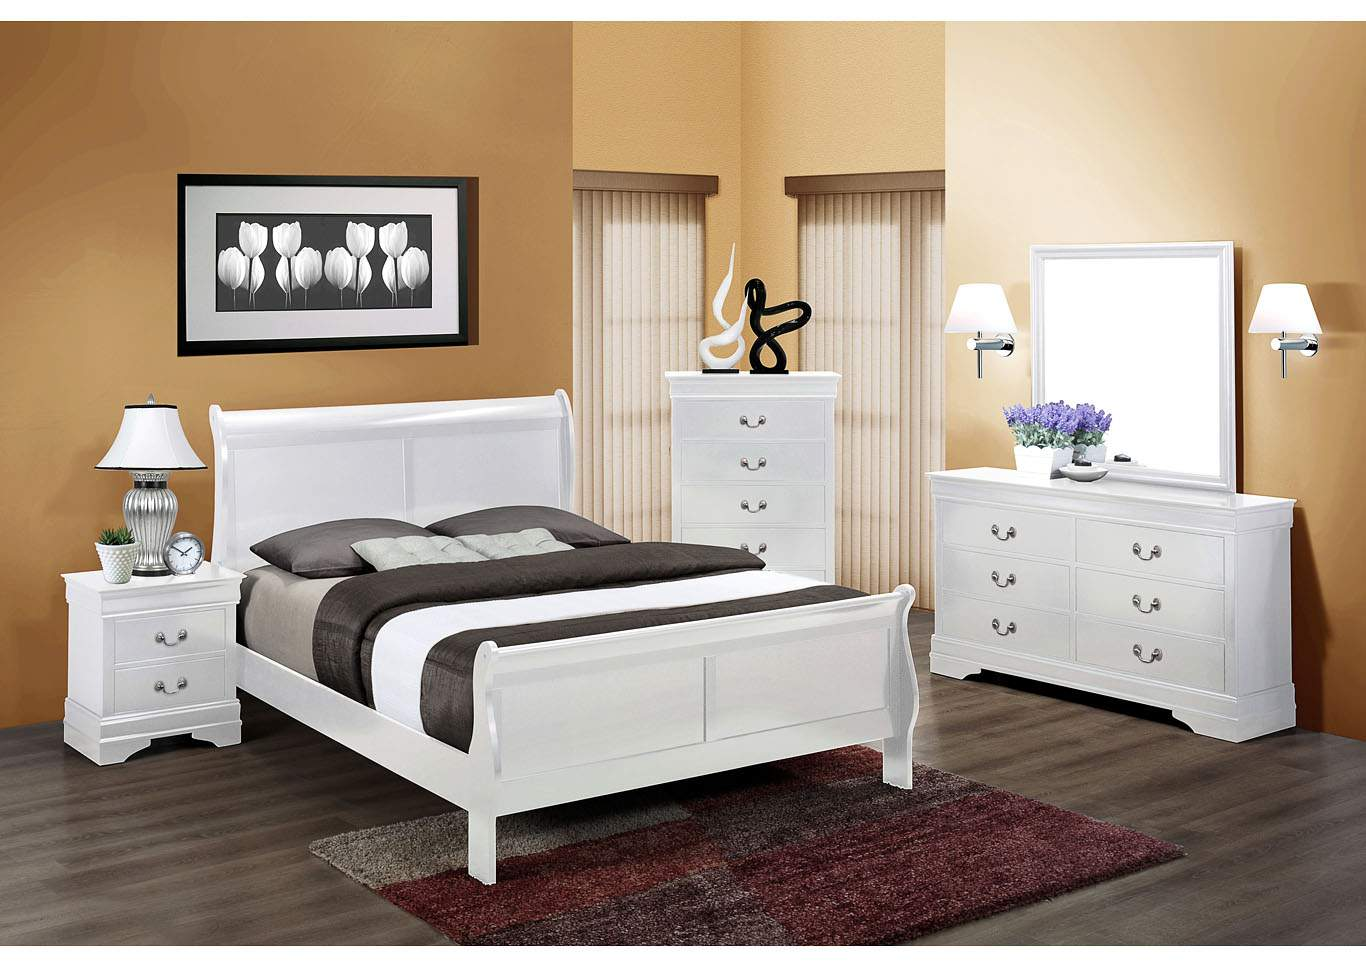 Louis Philip White King Platform Bed w/6 Drawer Dresser and Mirror,Crown Mark